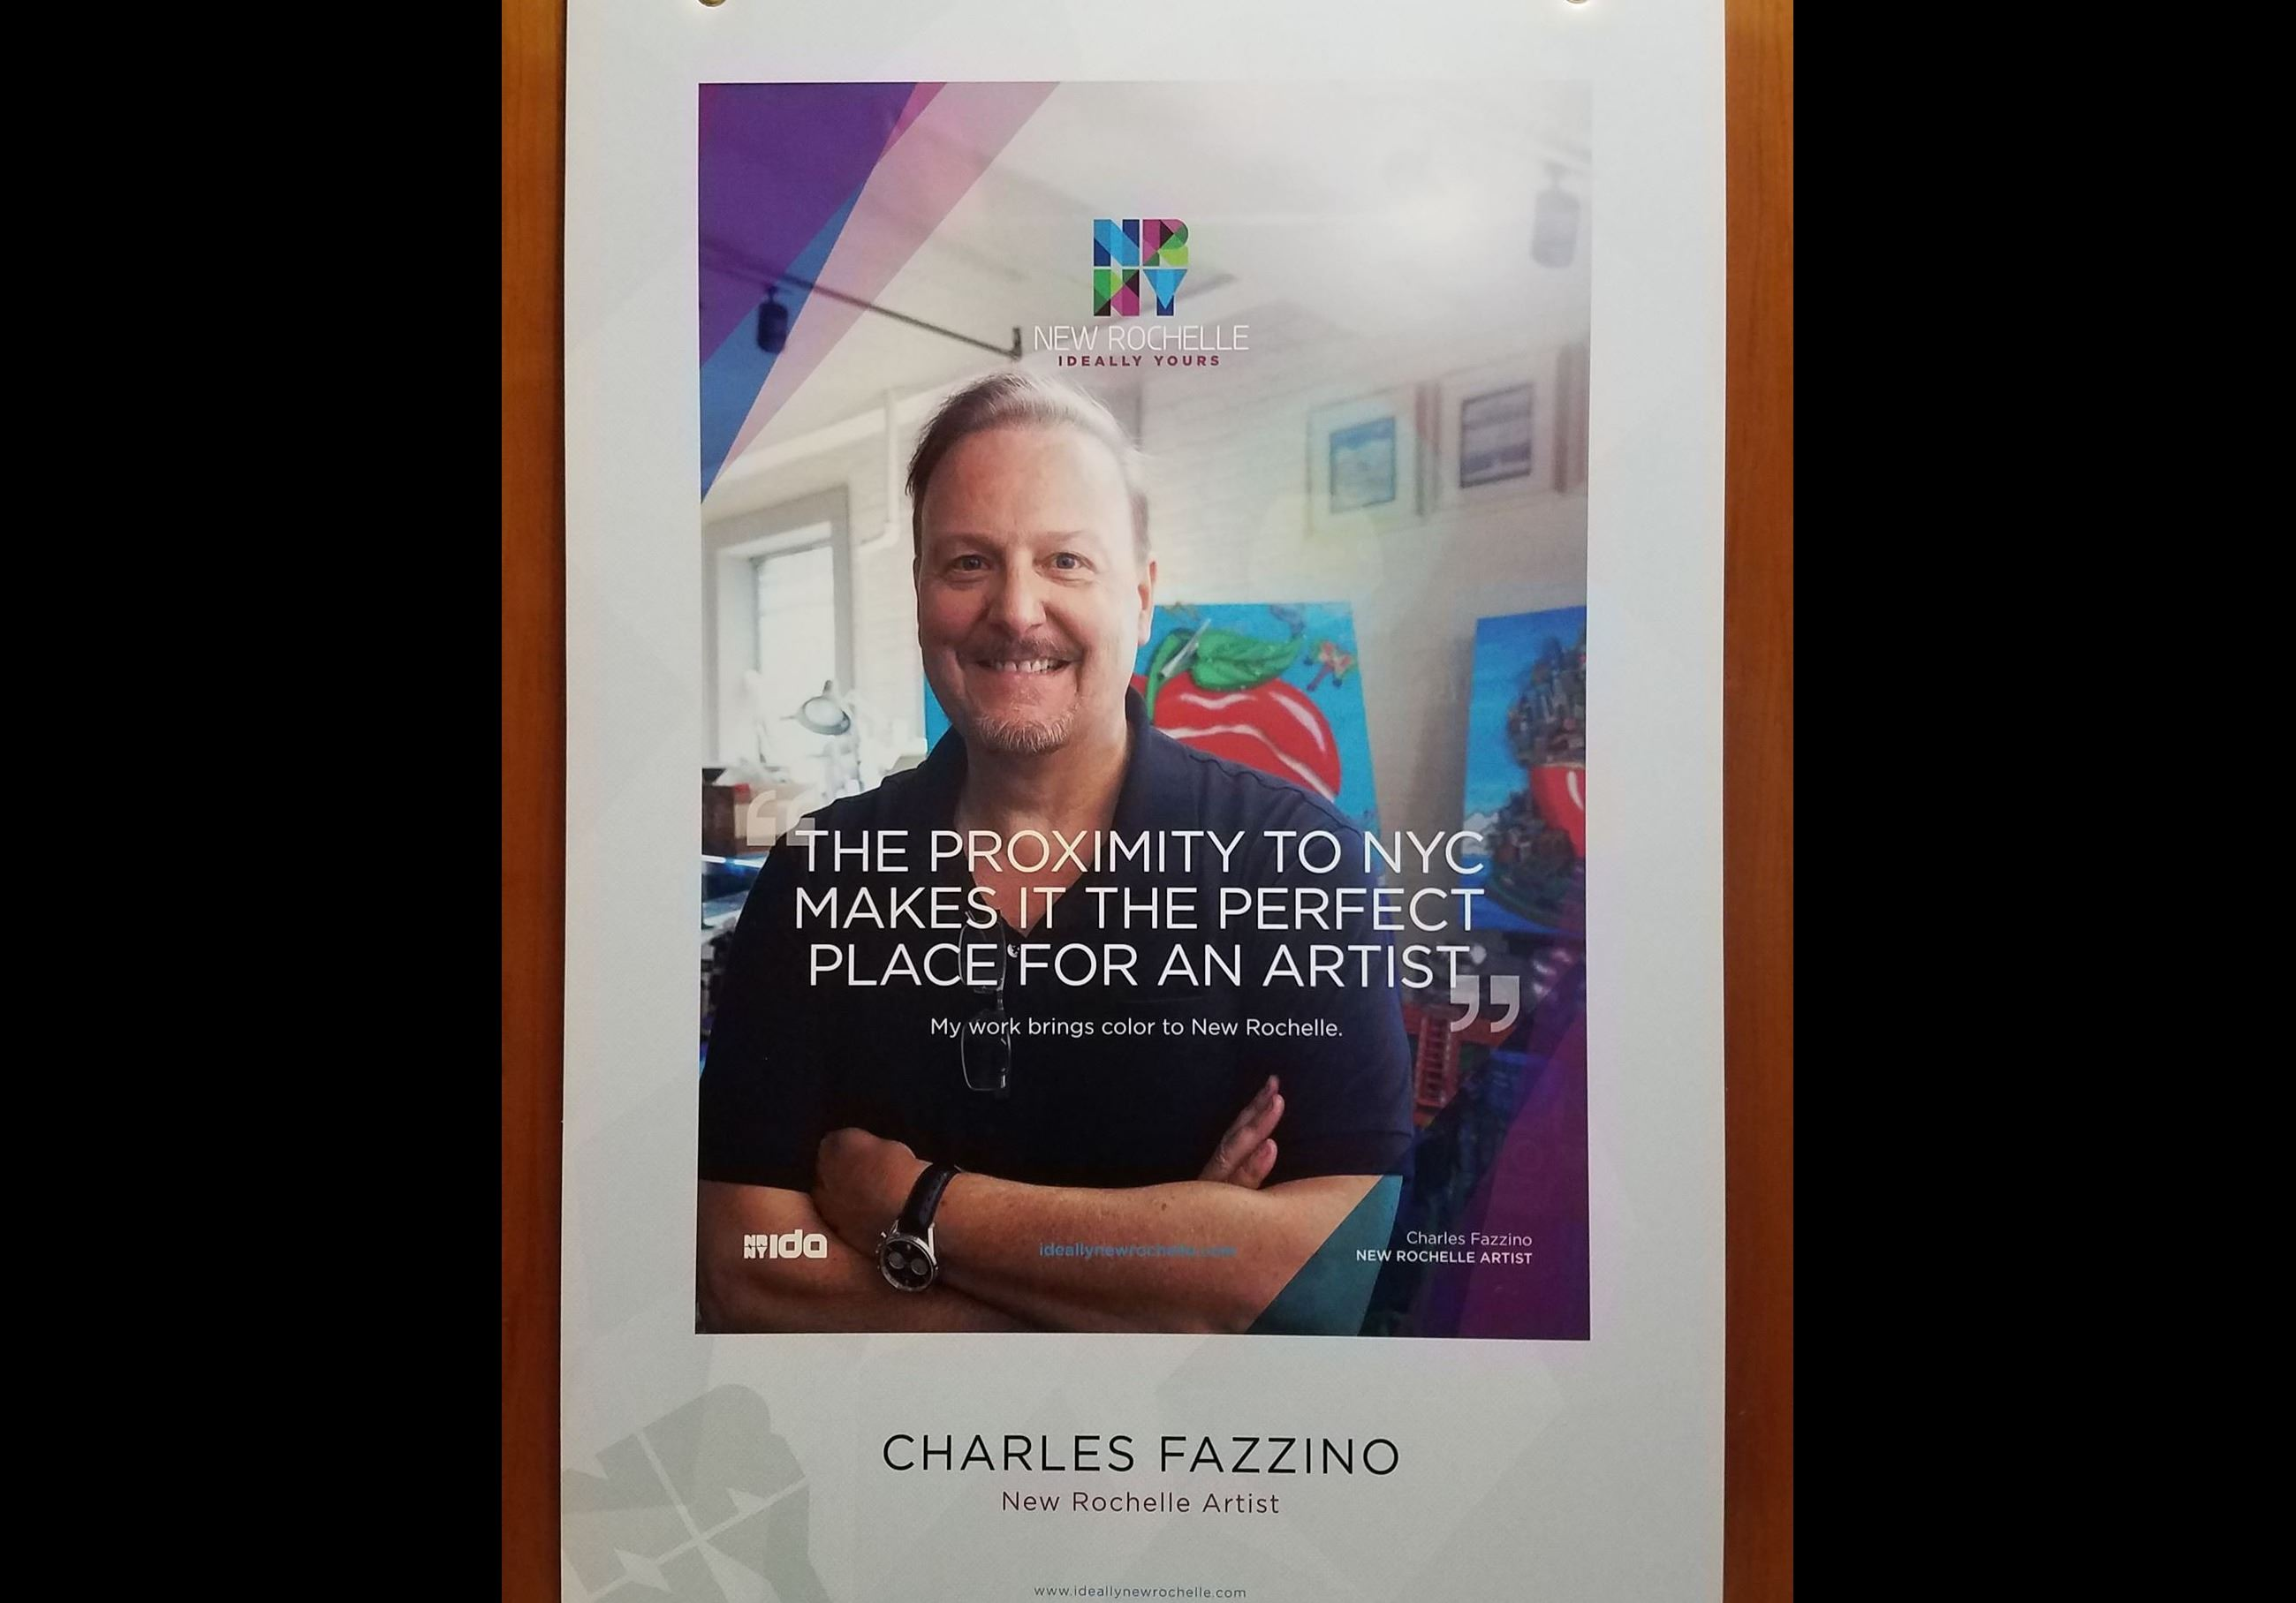 New Rochelle Artist Charles Fazzino Poster